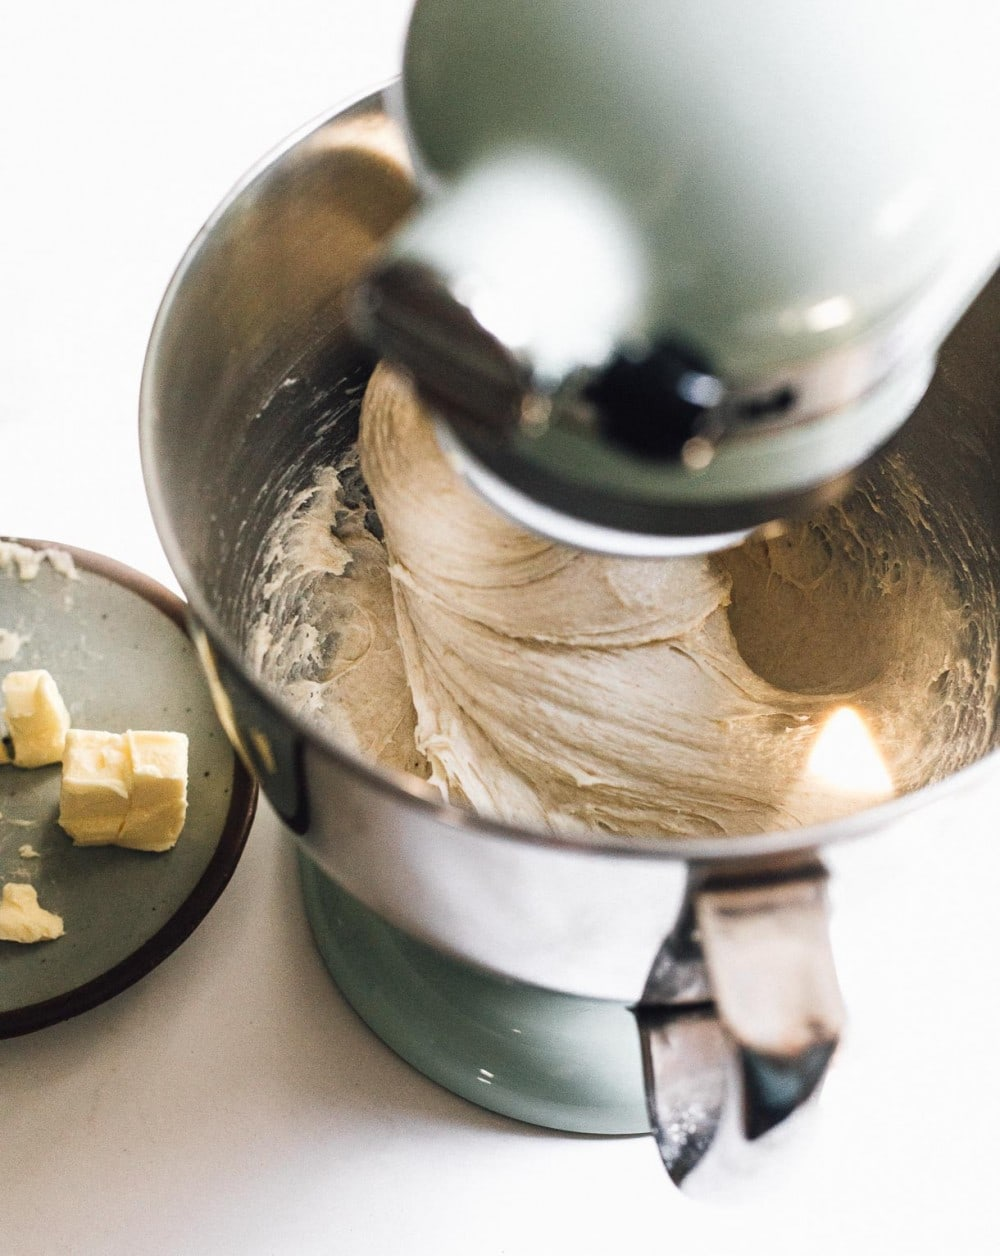 cinnamon roll dough being mixed in  a kitchenaid stand mixer, with butter on plate to its left